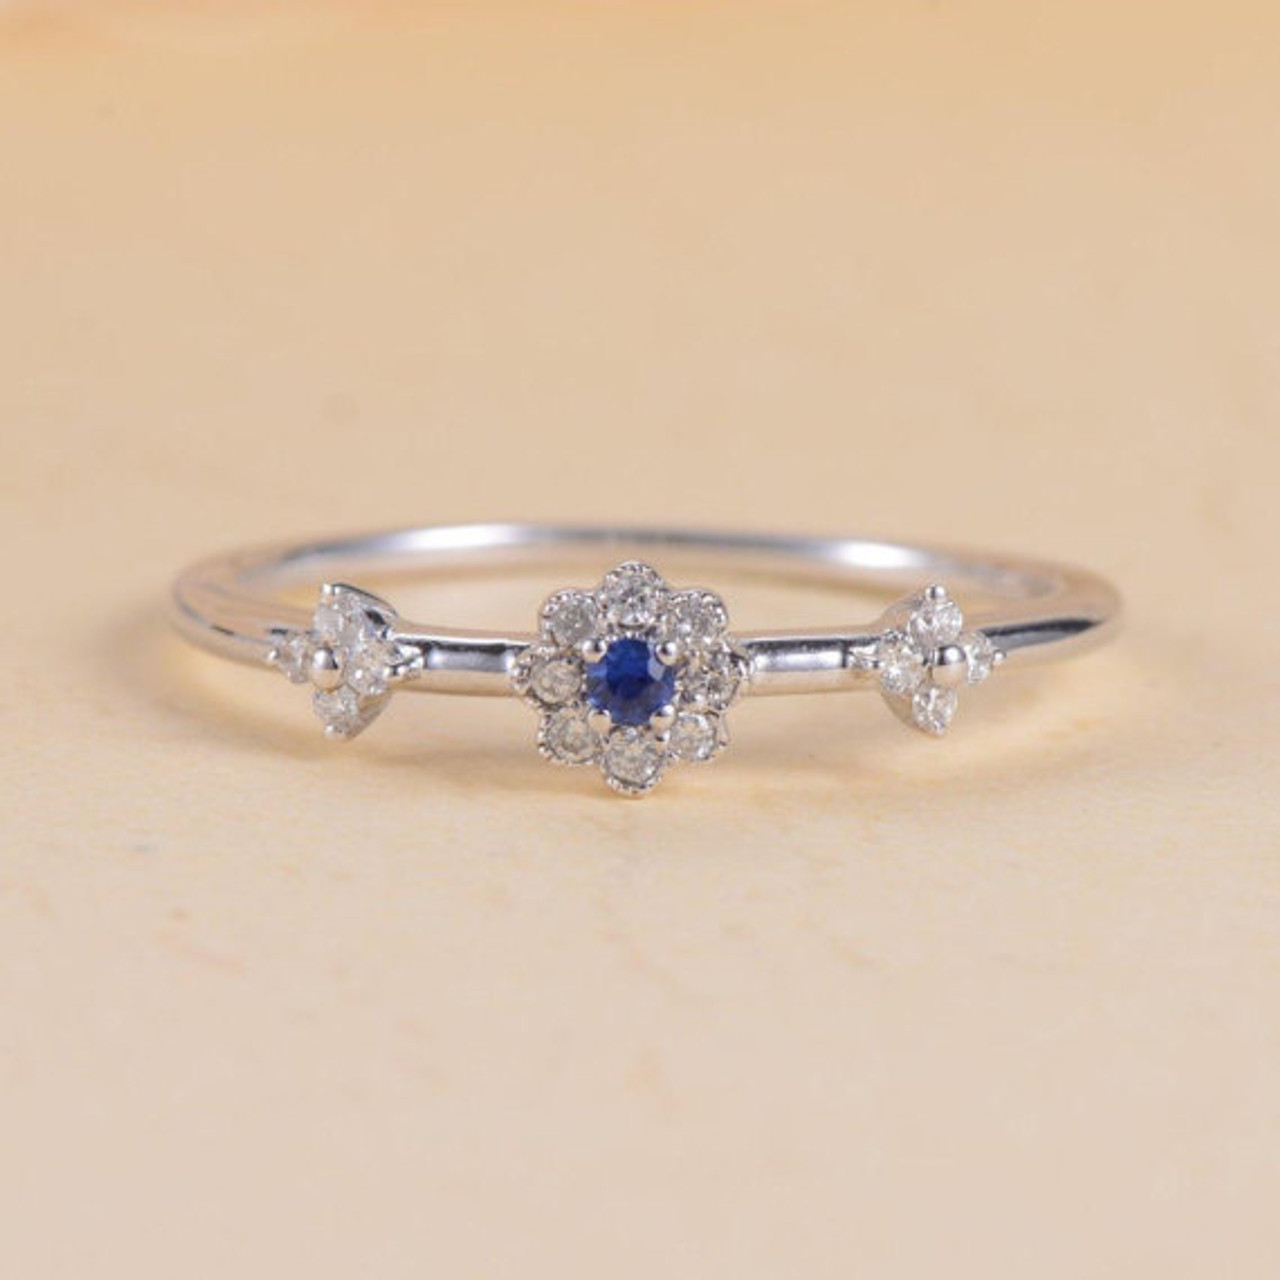 Blue Sapphire Ring Halo Antique Diamond Flower White Gold Engagement